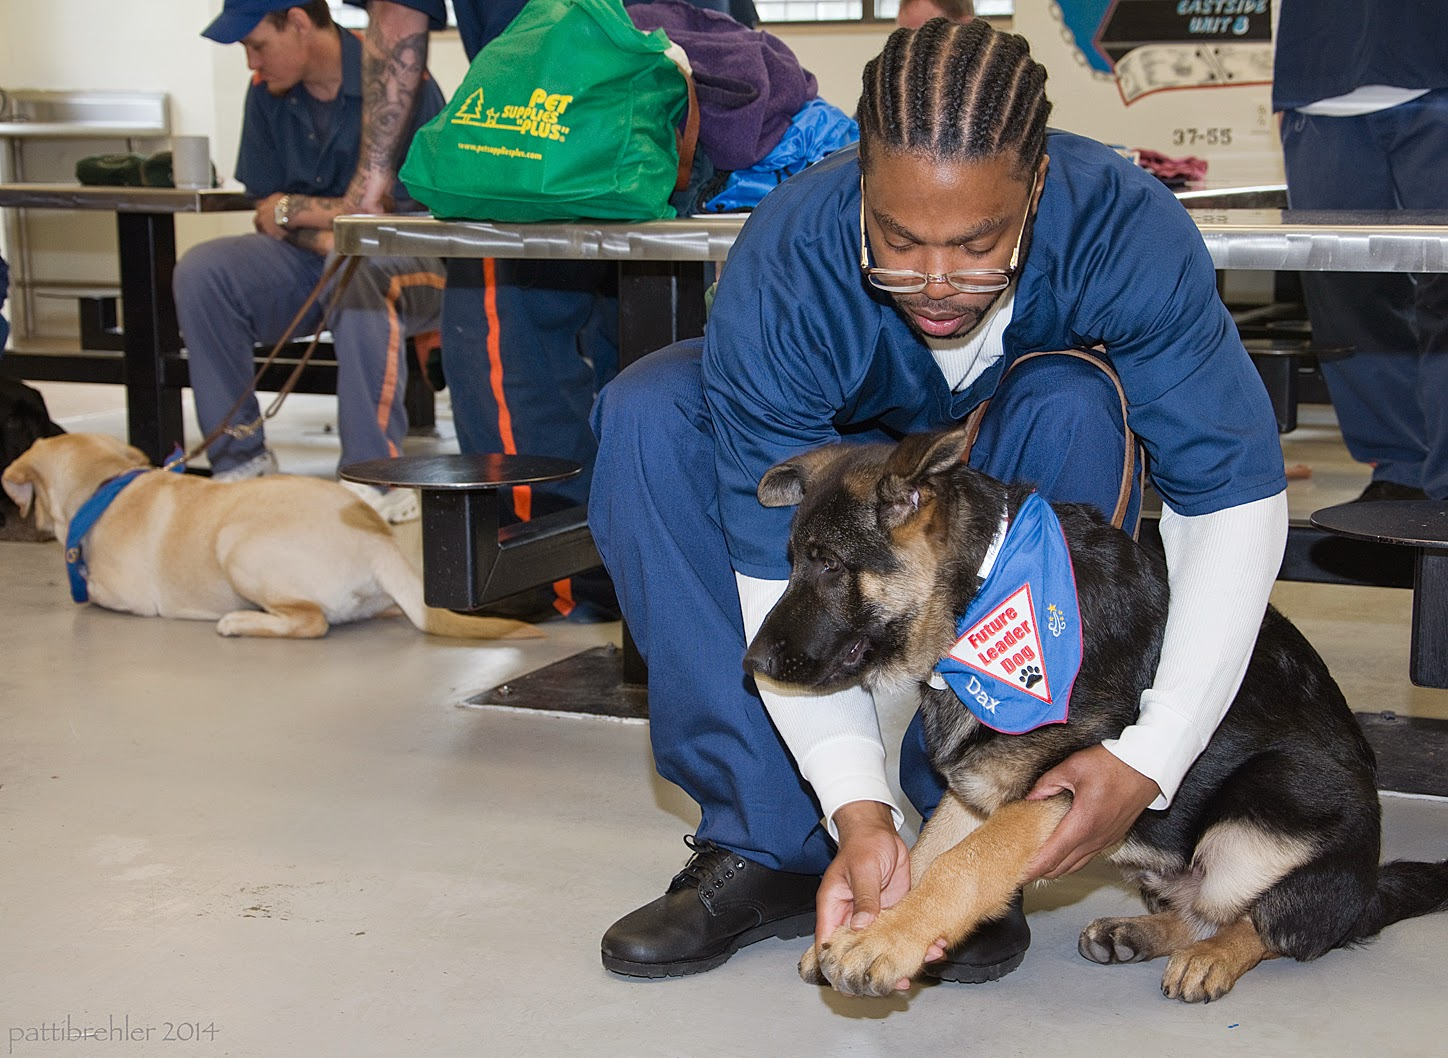 An african american man dressed in the blue prison uniform is sitting on a lunch table stool leaning down toward a german shepherd puppy that is sitting on a tile floor. The man is reaching down and checking the puppy's front paws. The puppy is wearing a blue Future Leader Dog bandana. In the background to the left is another man sitting on a stool and looking at a yellow lab that is lying down on the floor.